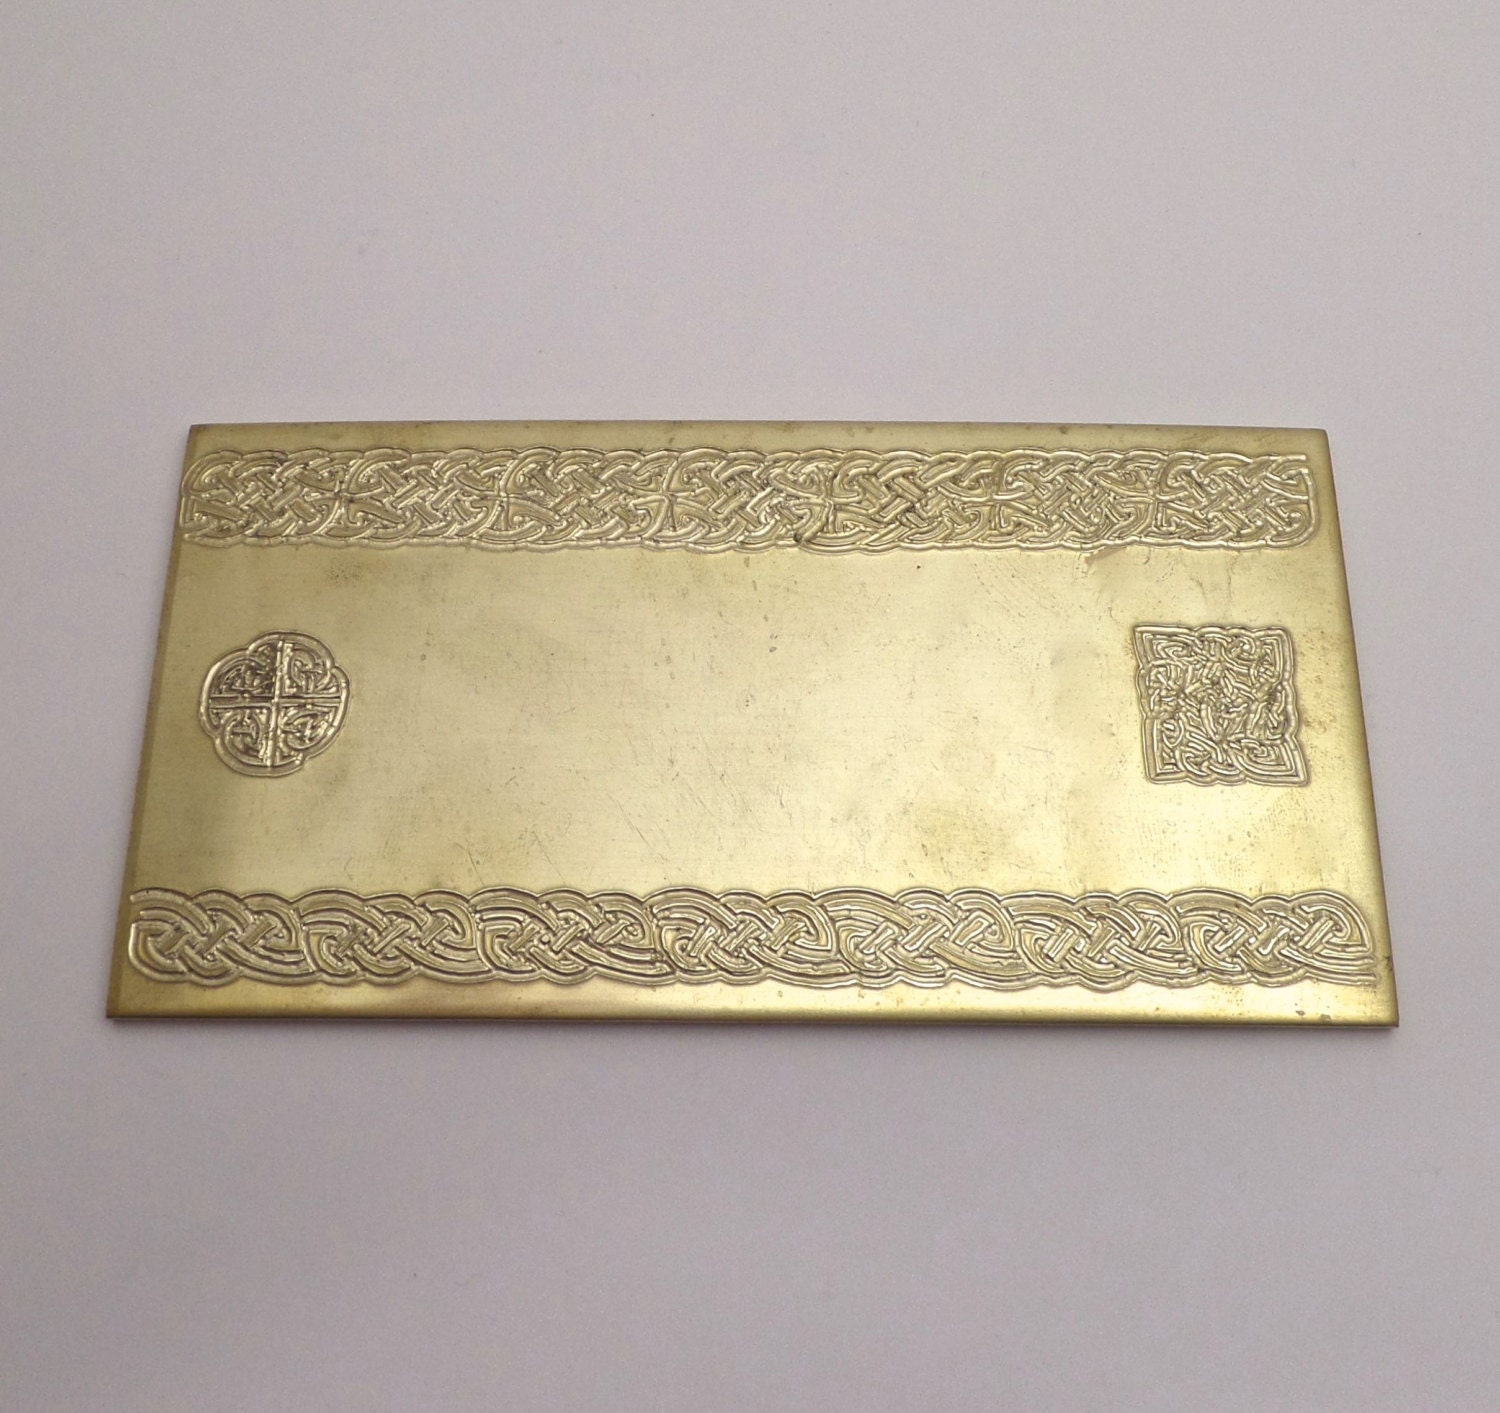 Celtic Rolling Mill Texture Embossing Plate 3 x 6